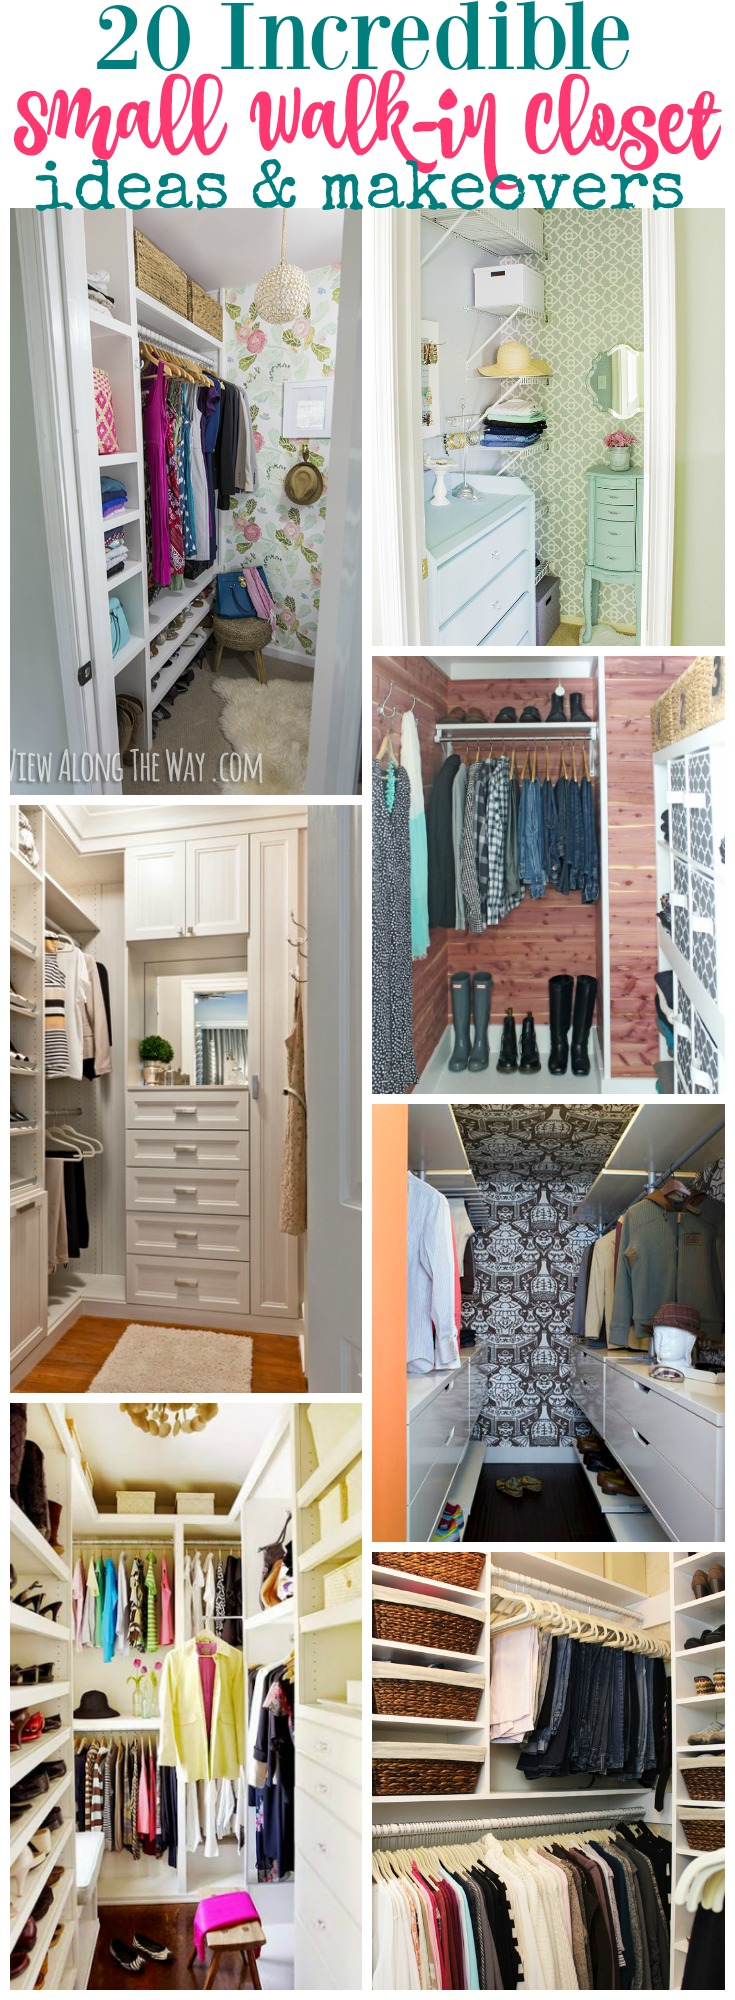 Diy Walk In Closet | Diy Custom Closet Ideas | How To Make Your Own Closet Organizer